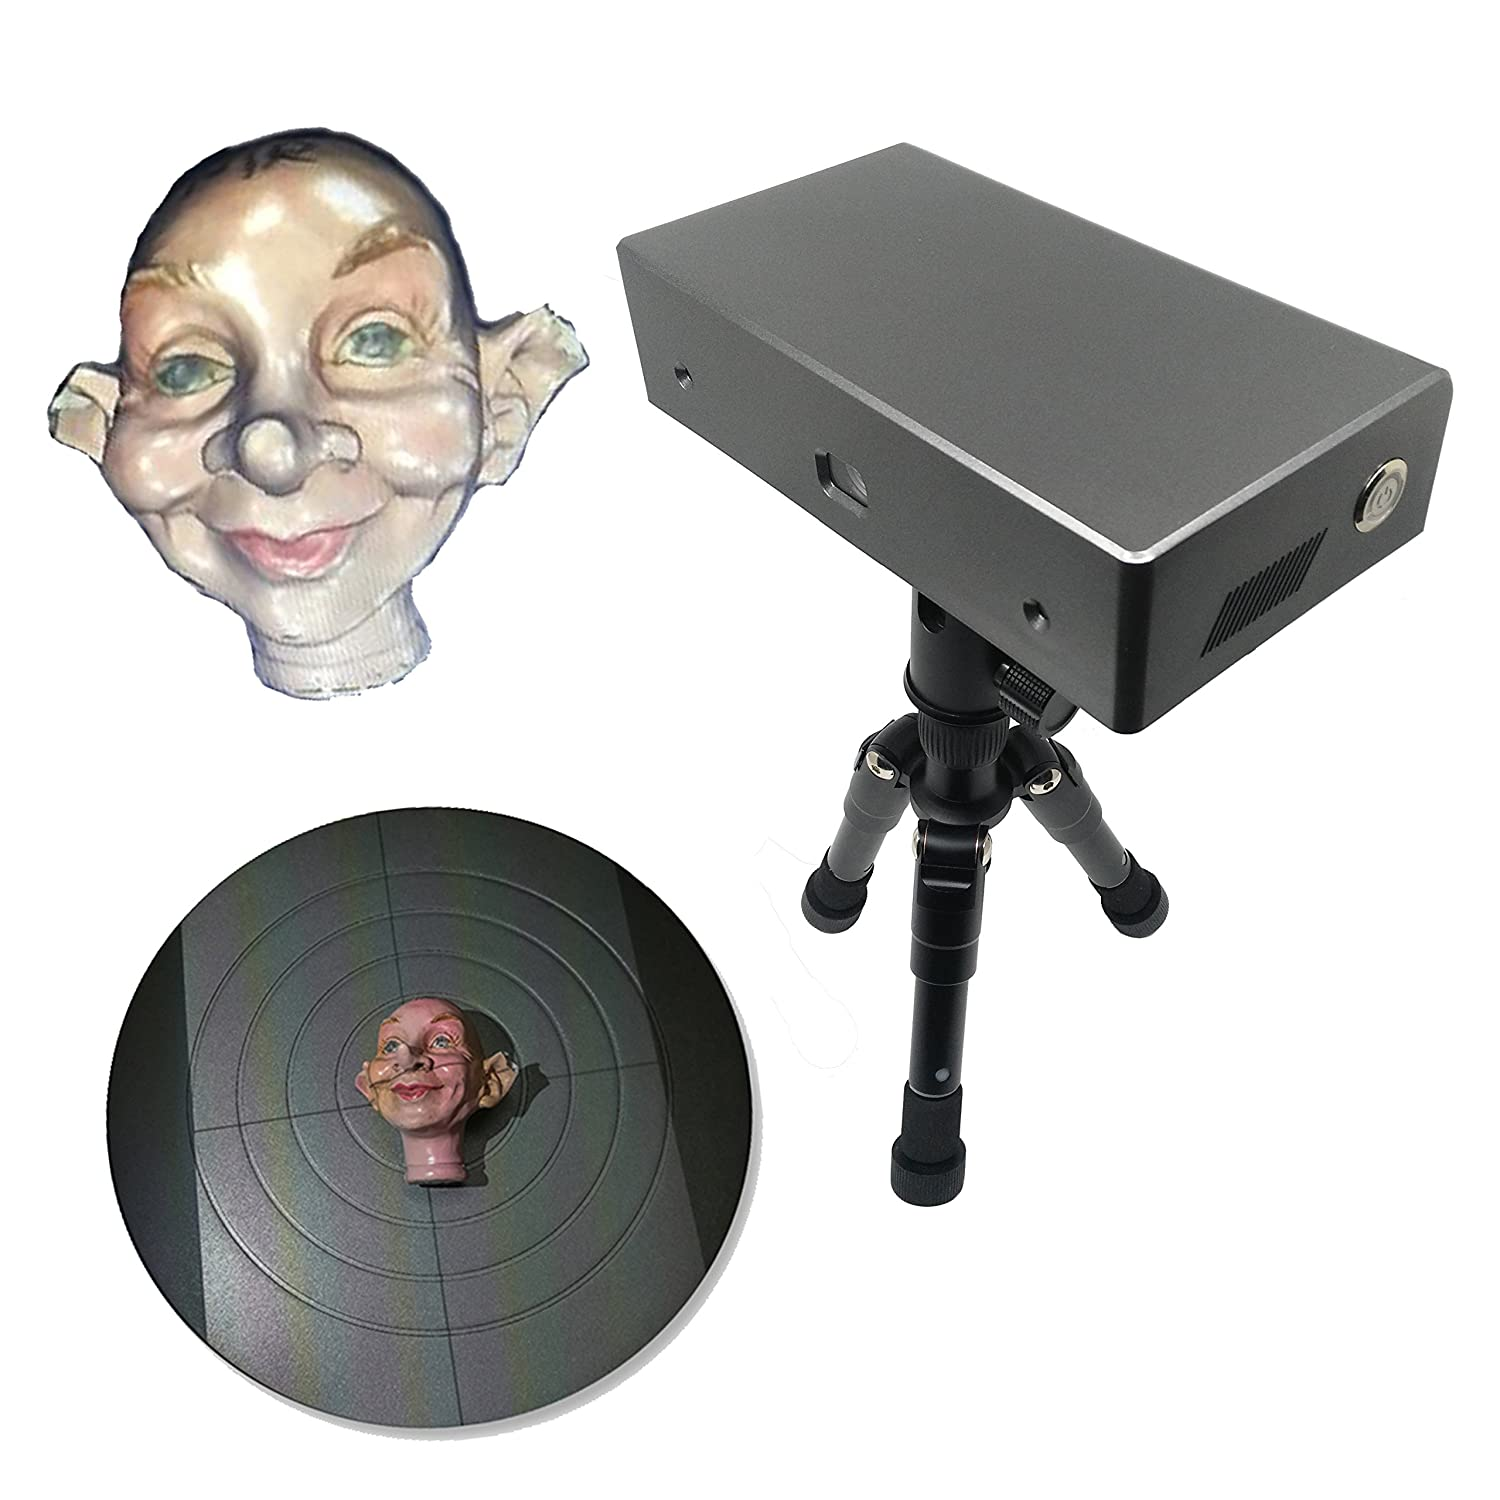 Desktop 3D Scanner Full Color 0.08mm Accuracy 30FPS Thunk3D Cooper C20 Beijing Xunheng Technology Co.Ltd